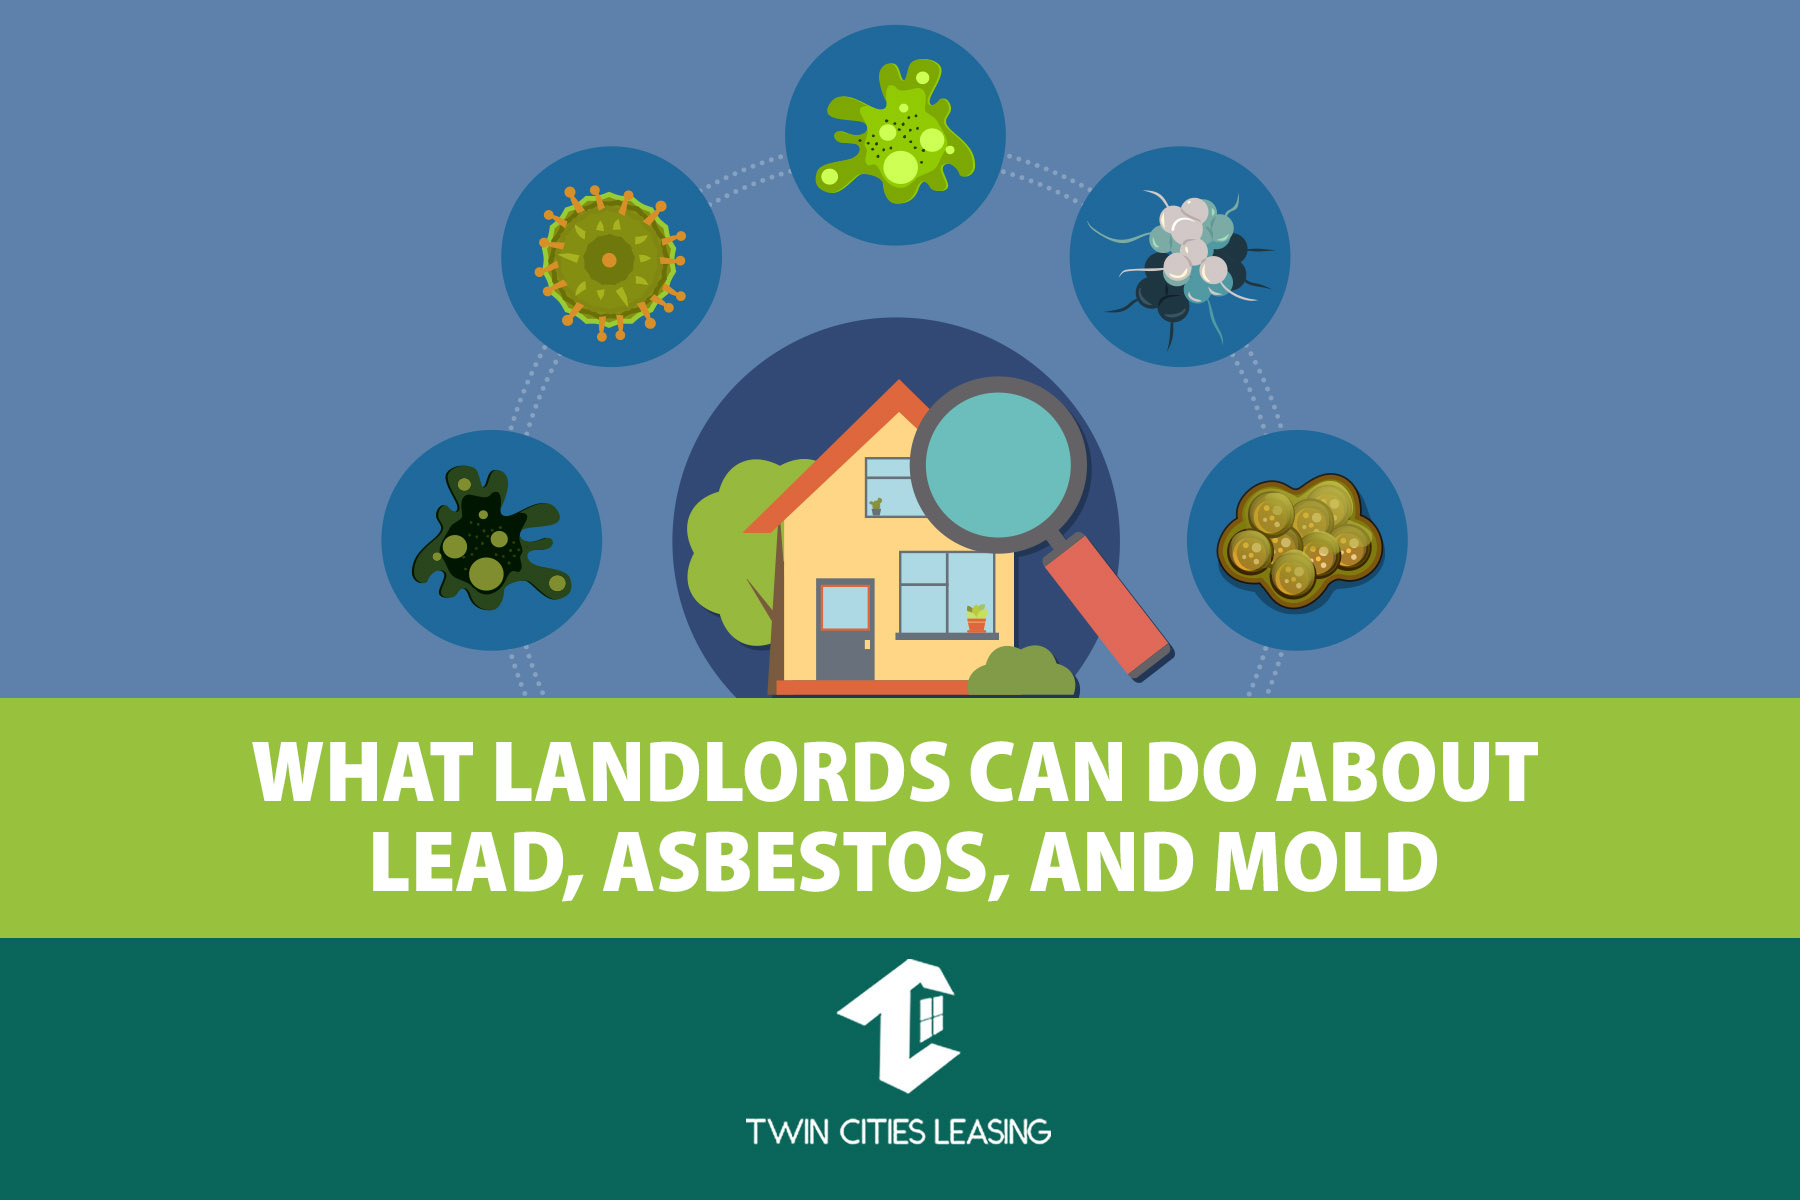 What Landlords Can Do About Lead, Asbestos, and Mold